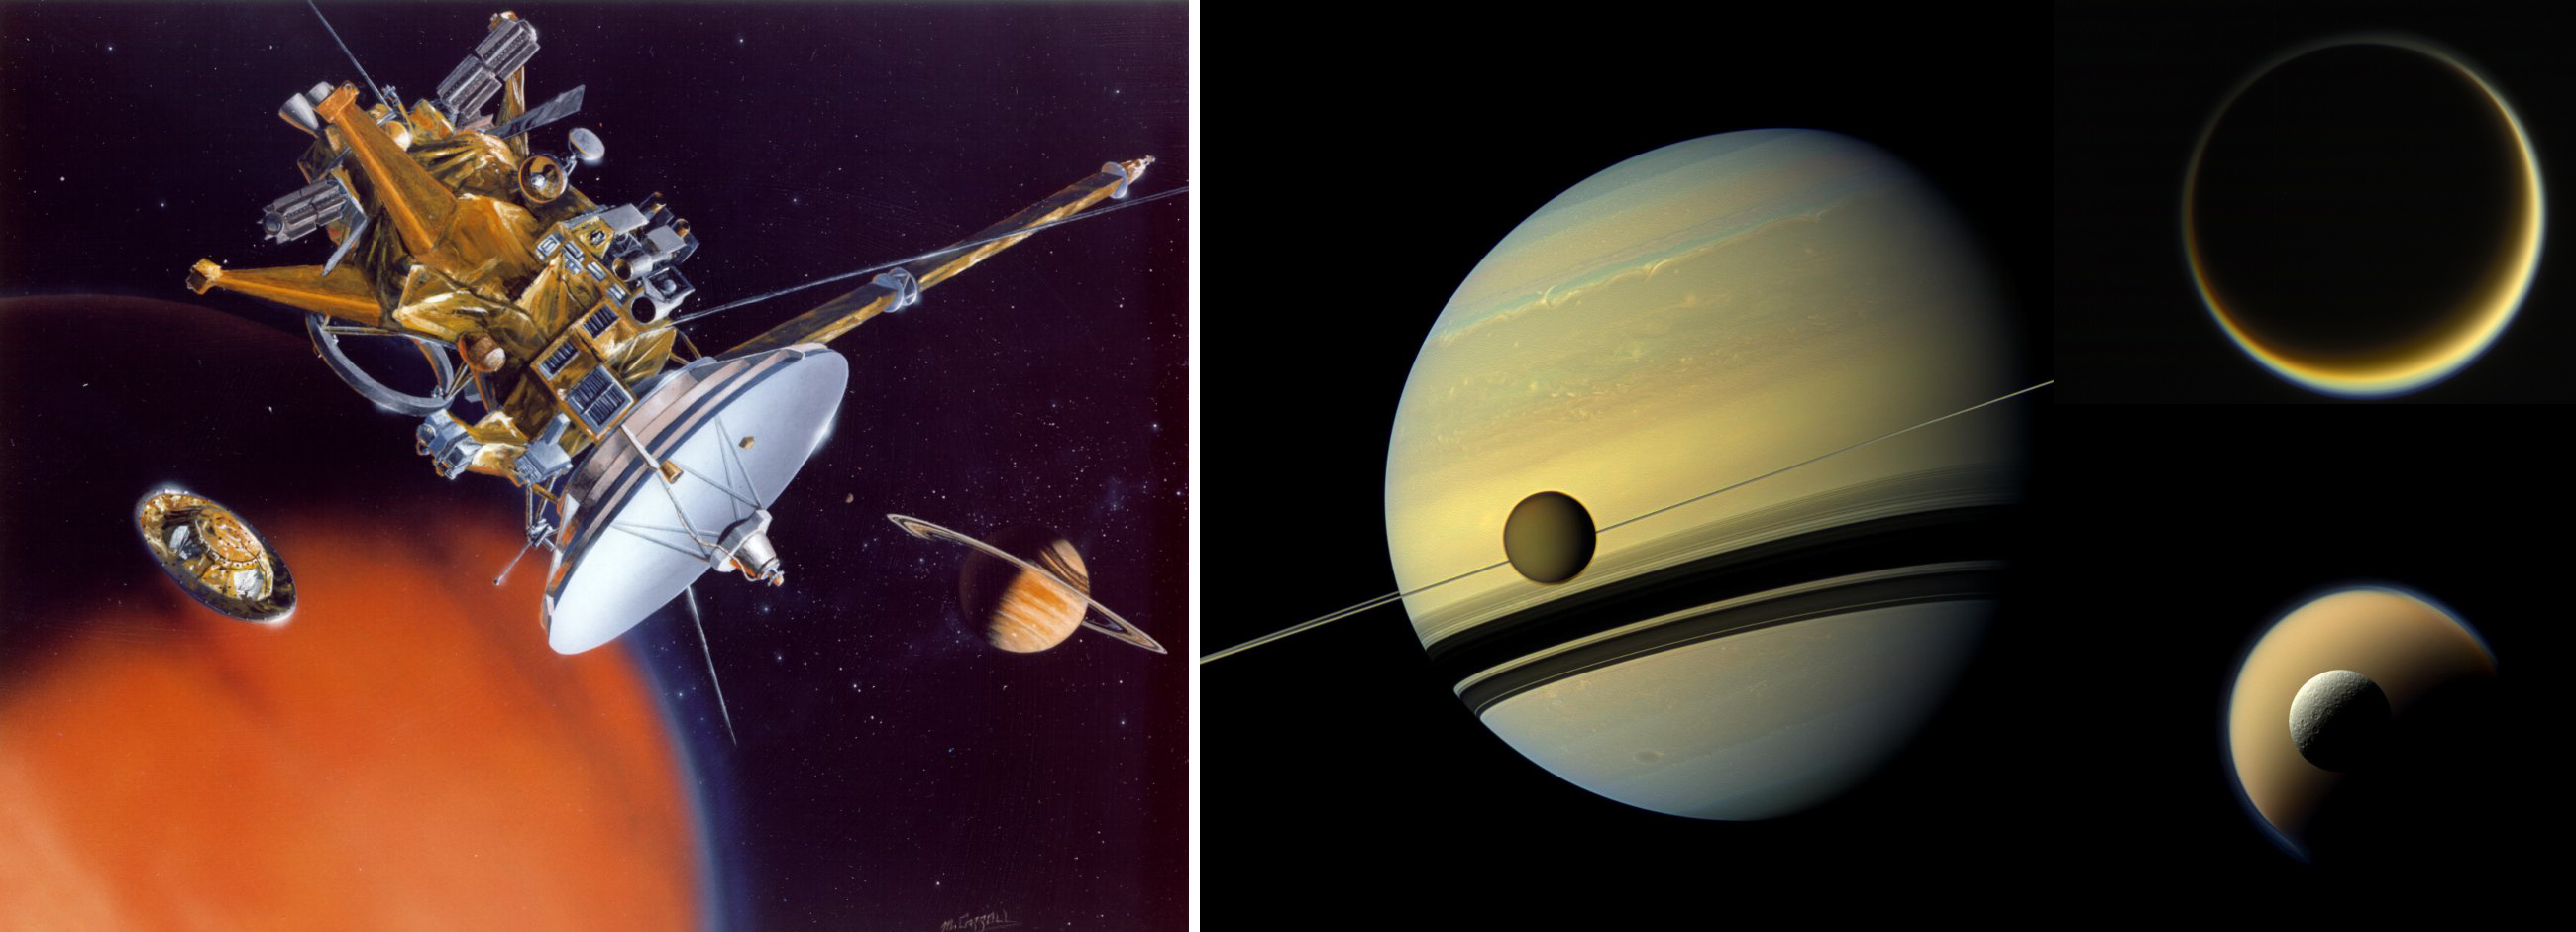 Cassini and Titan side by side